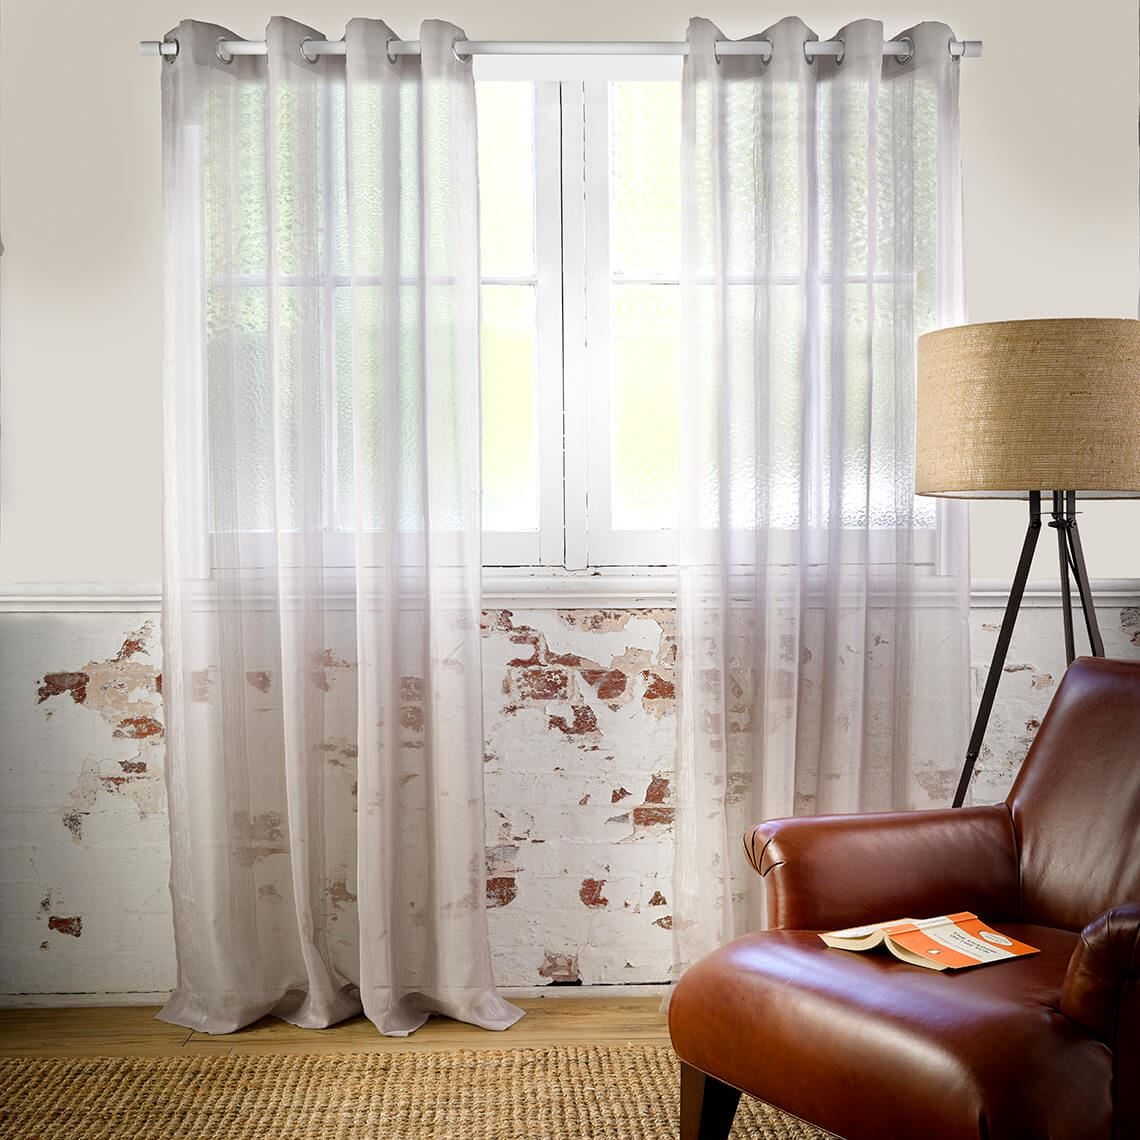 Houston Sheer Eyelet Curtain Size W 140cm x D 1cm x H 230cm in Dove Grey 100% Polyester/Stainless Steel Freedom by Freedom, a Curtains for sale on Style Sourcebook